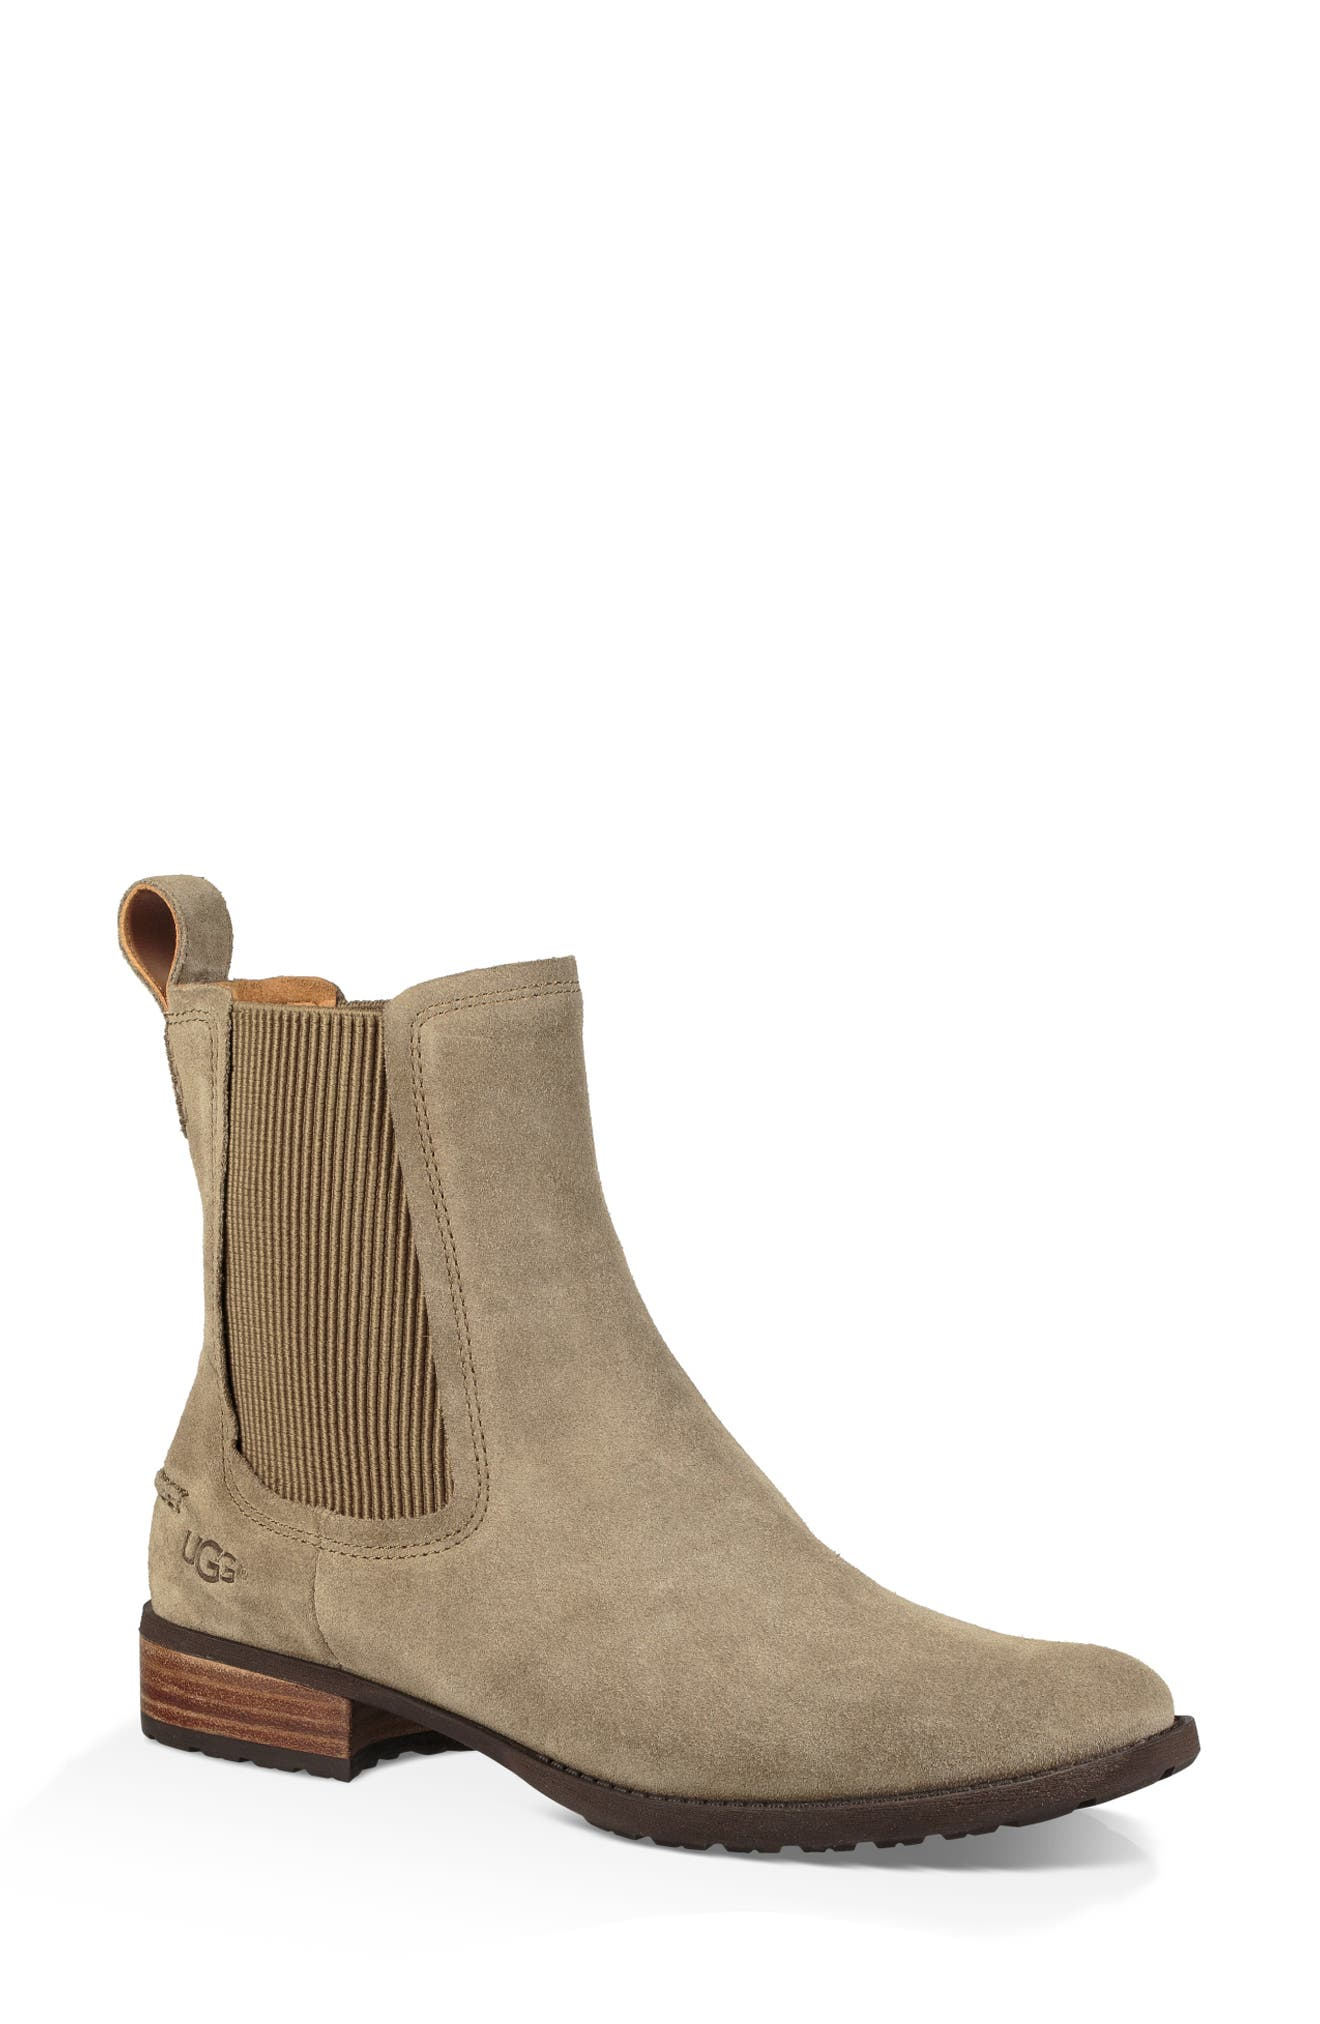 UGGHILLHURST BOOT - Classic ankle boots - khaki iN1IkEhoY5